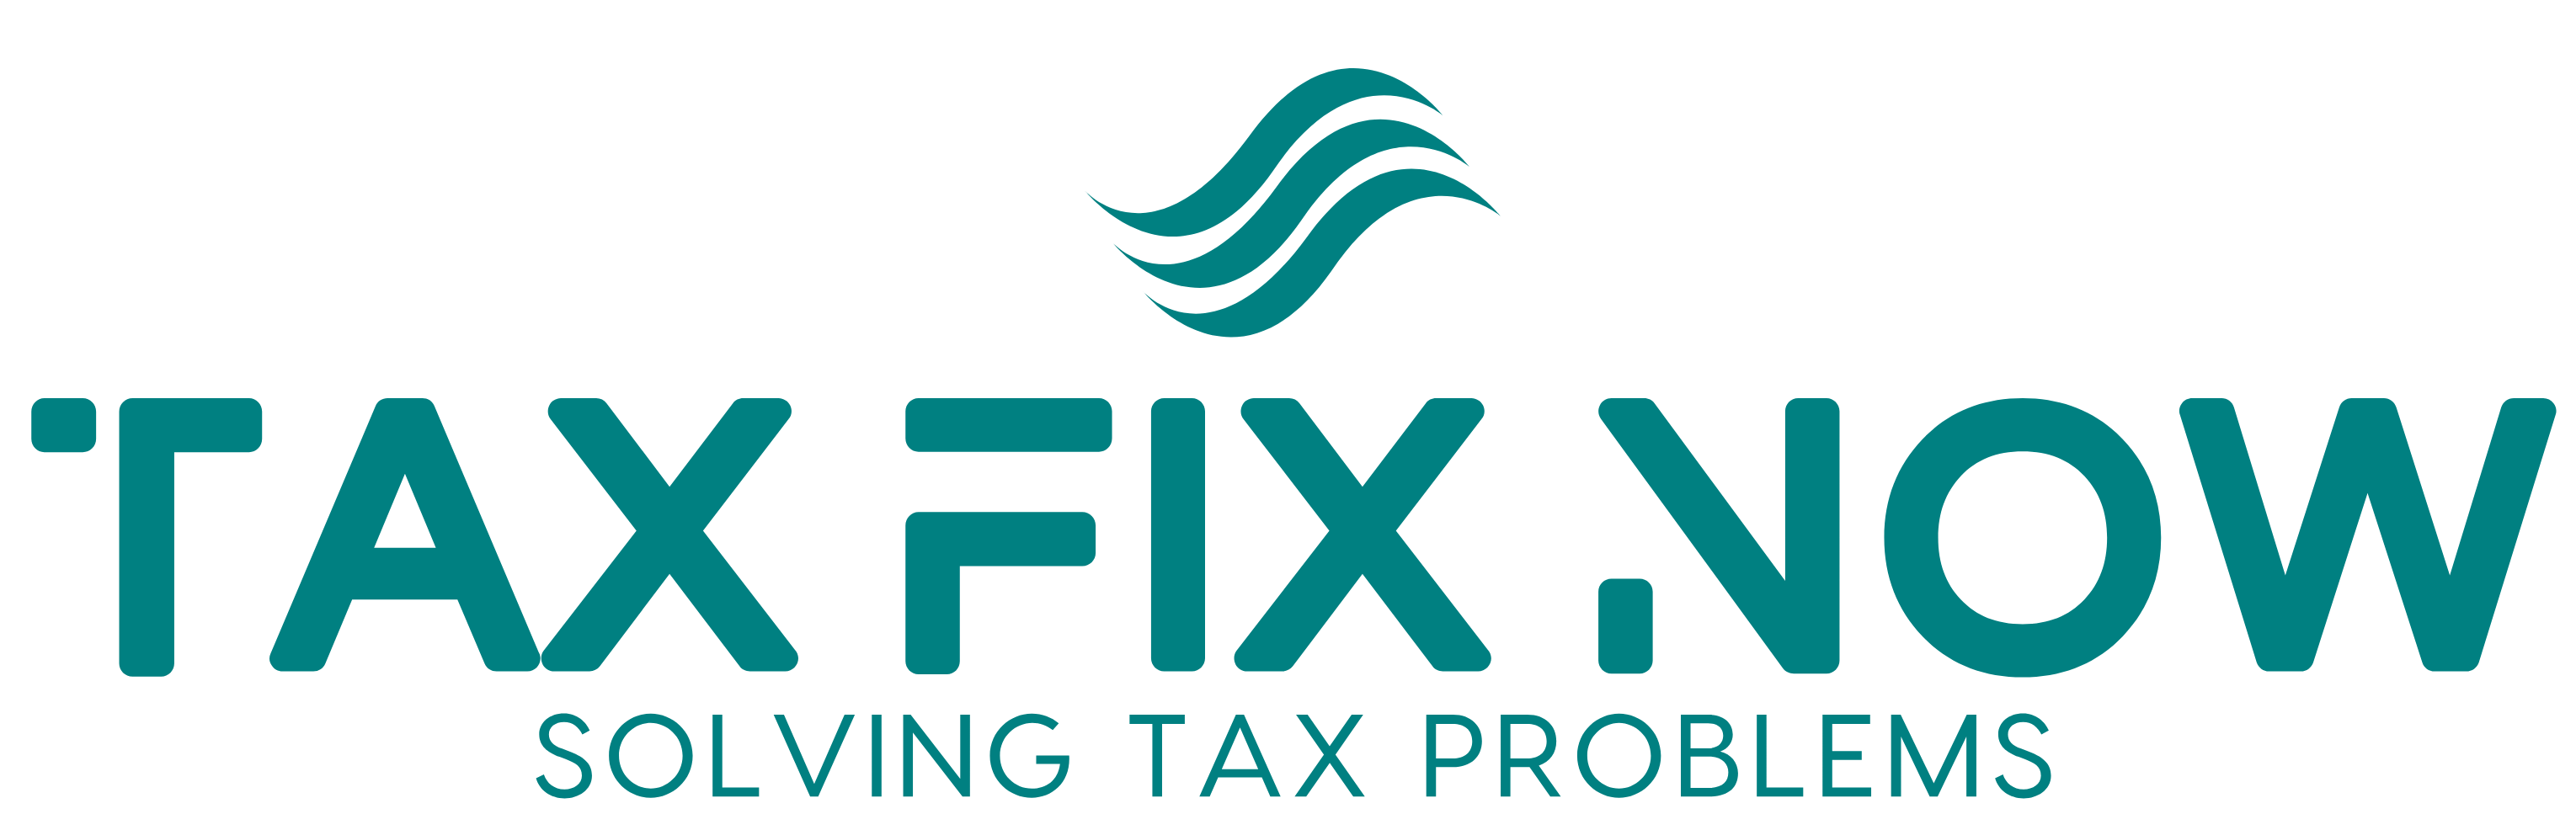 Highland Village, TX Bookkeeping Firm | Investment Strategies Page | Tax Fix Now